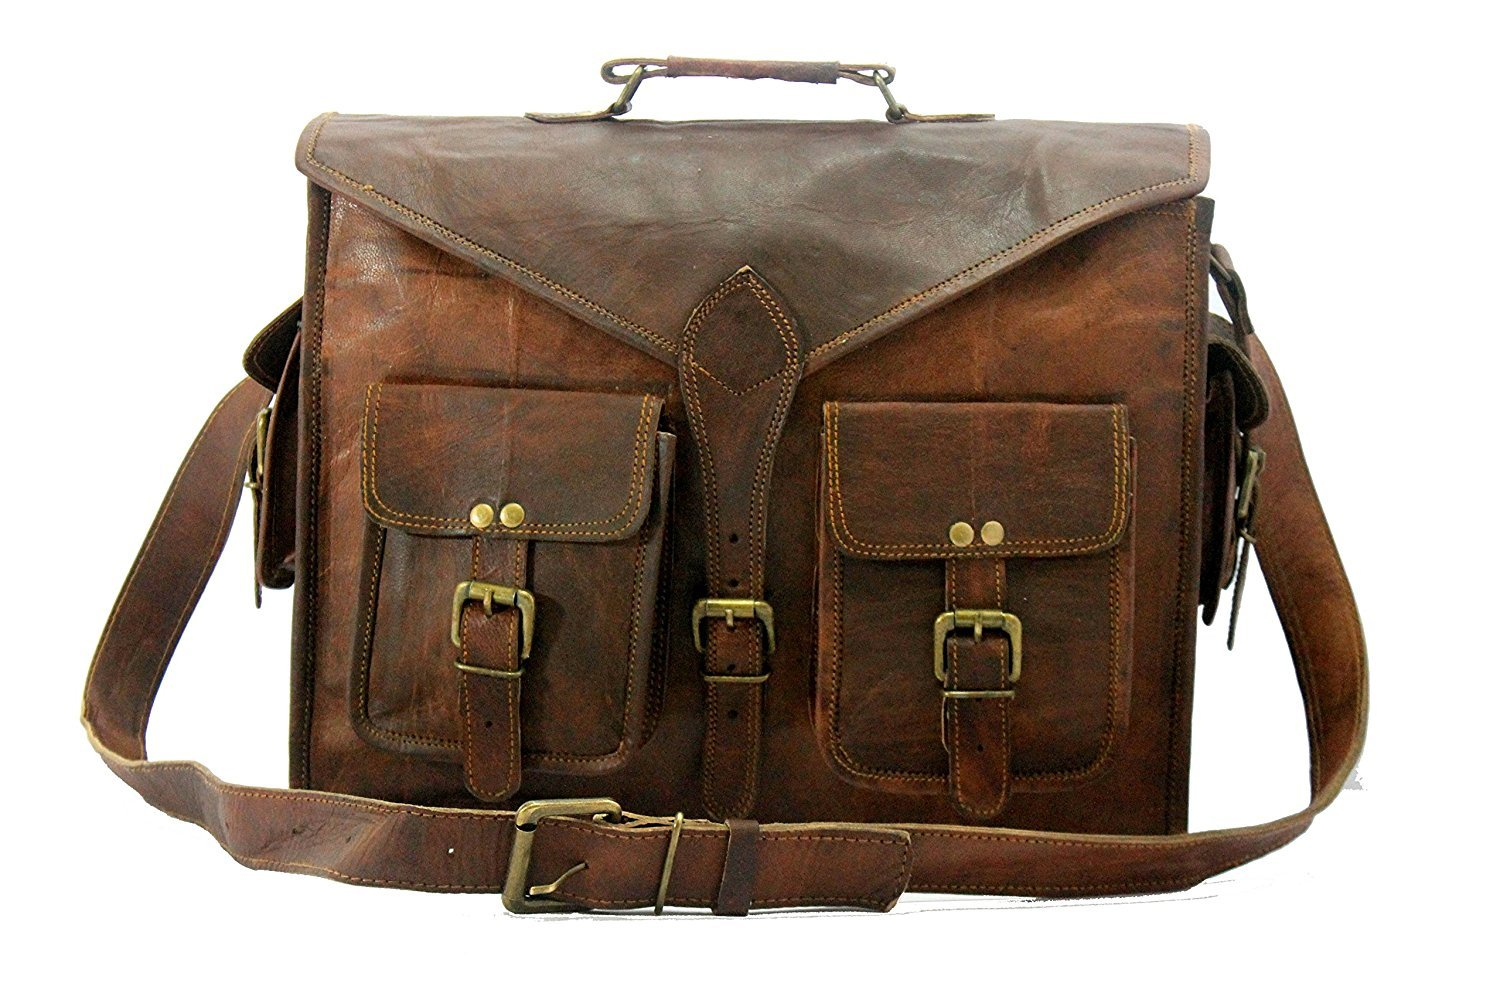 a2608a76a583 Handmade_World Genuine Leather Messenger Bag 18